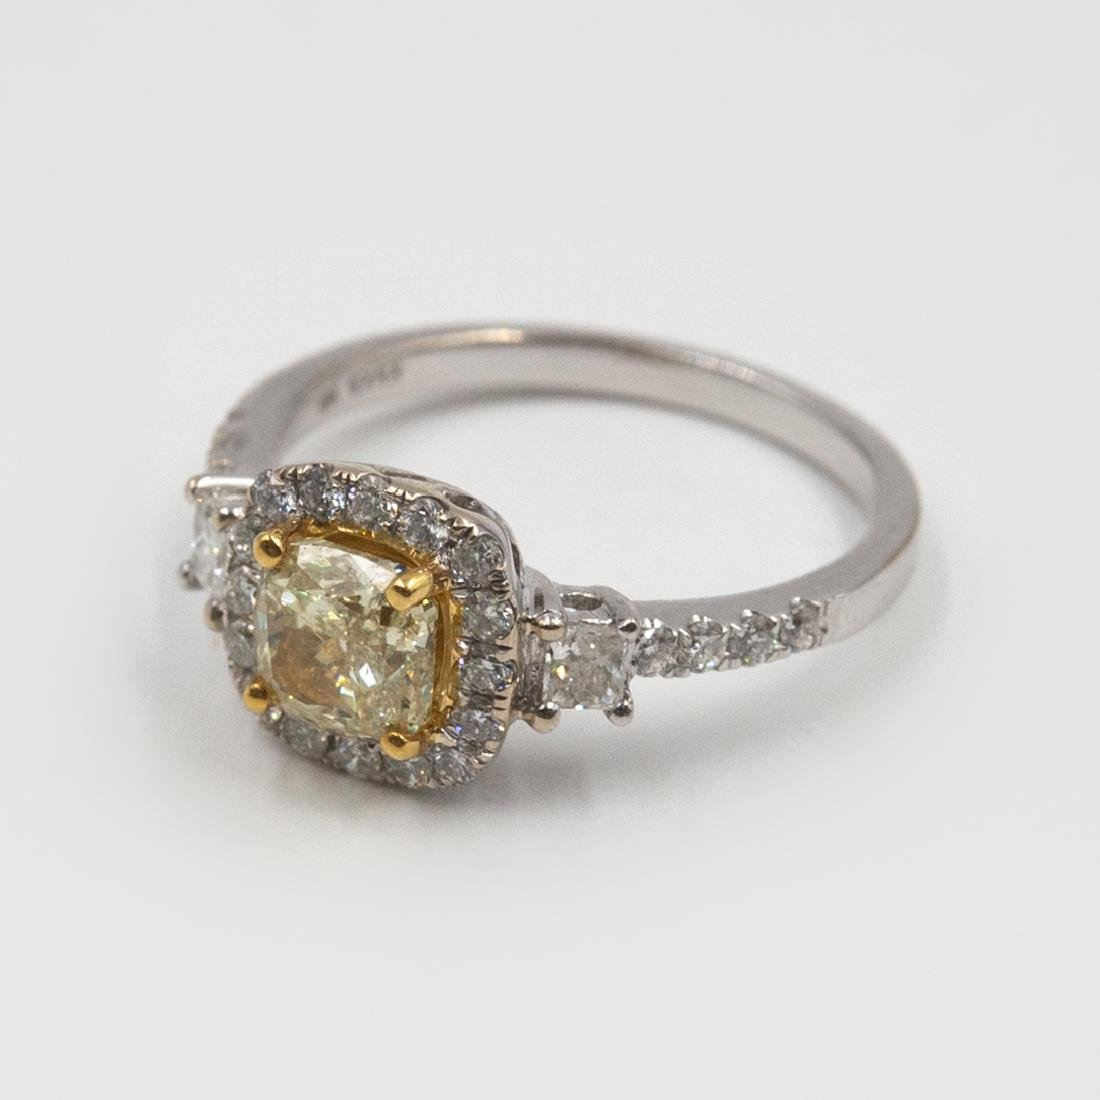 18k Gold and Yellow Diamond Ring - 3